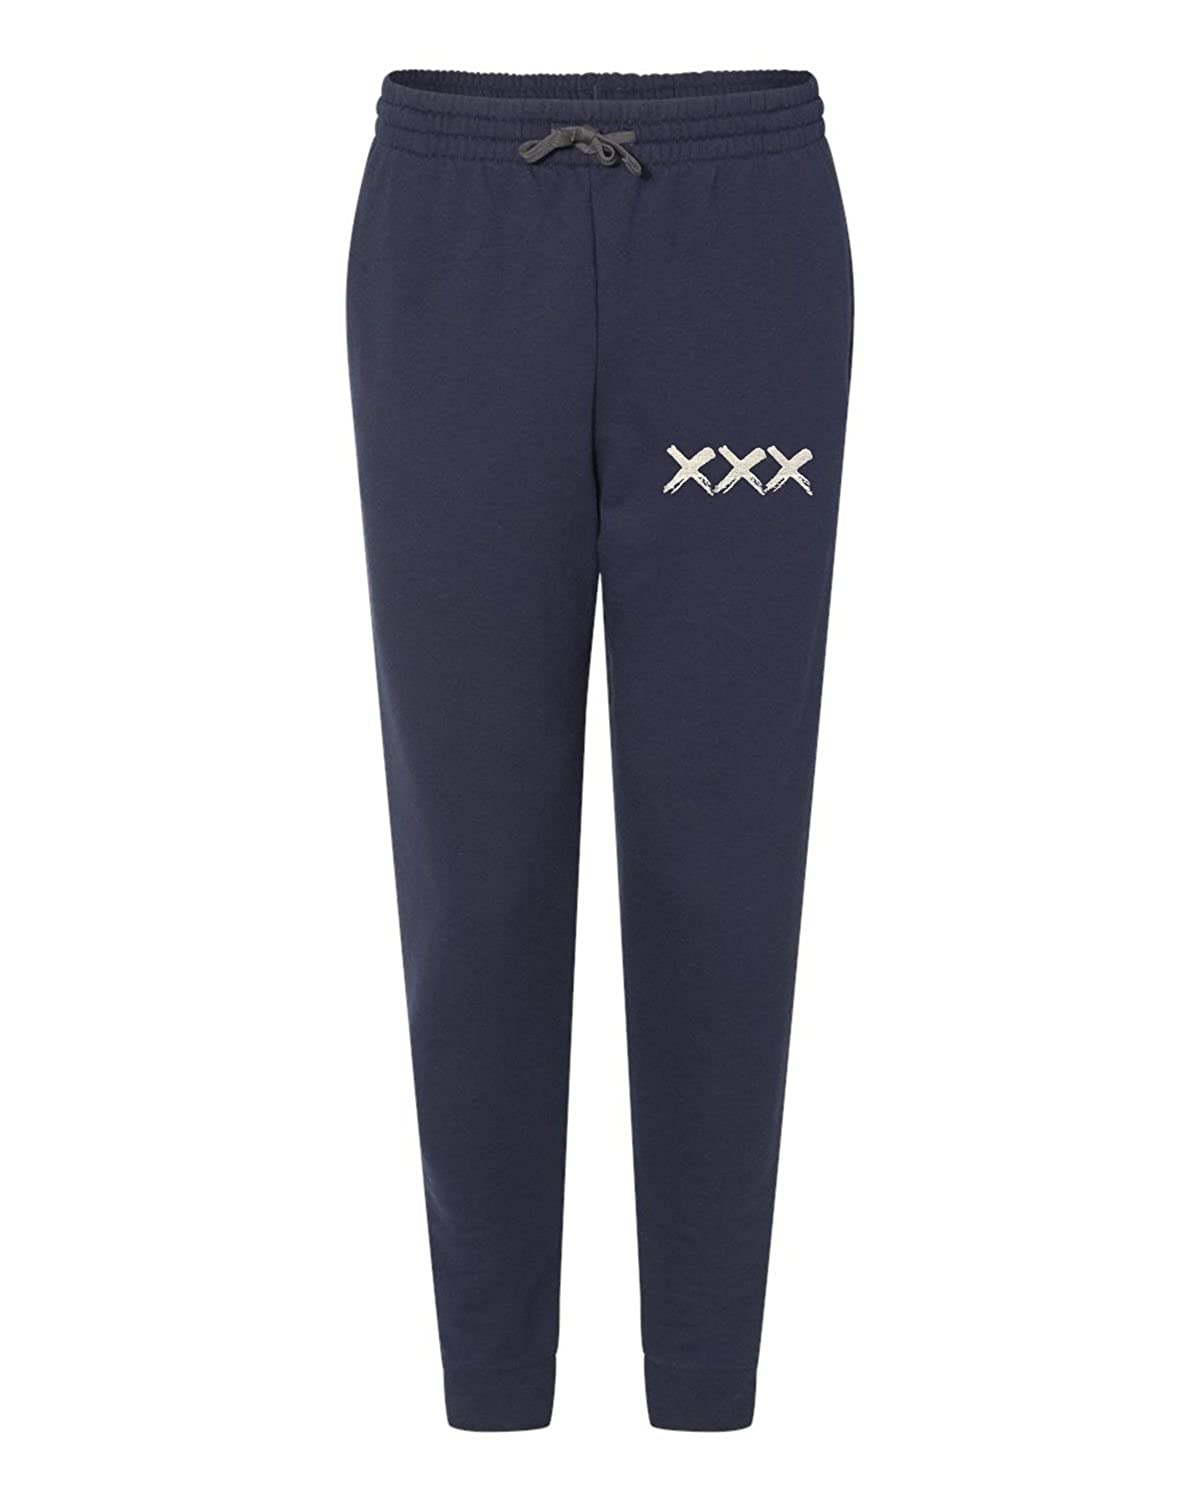 Go All Out Adult XXX Embroidered Joggers